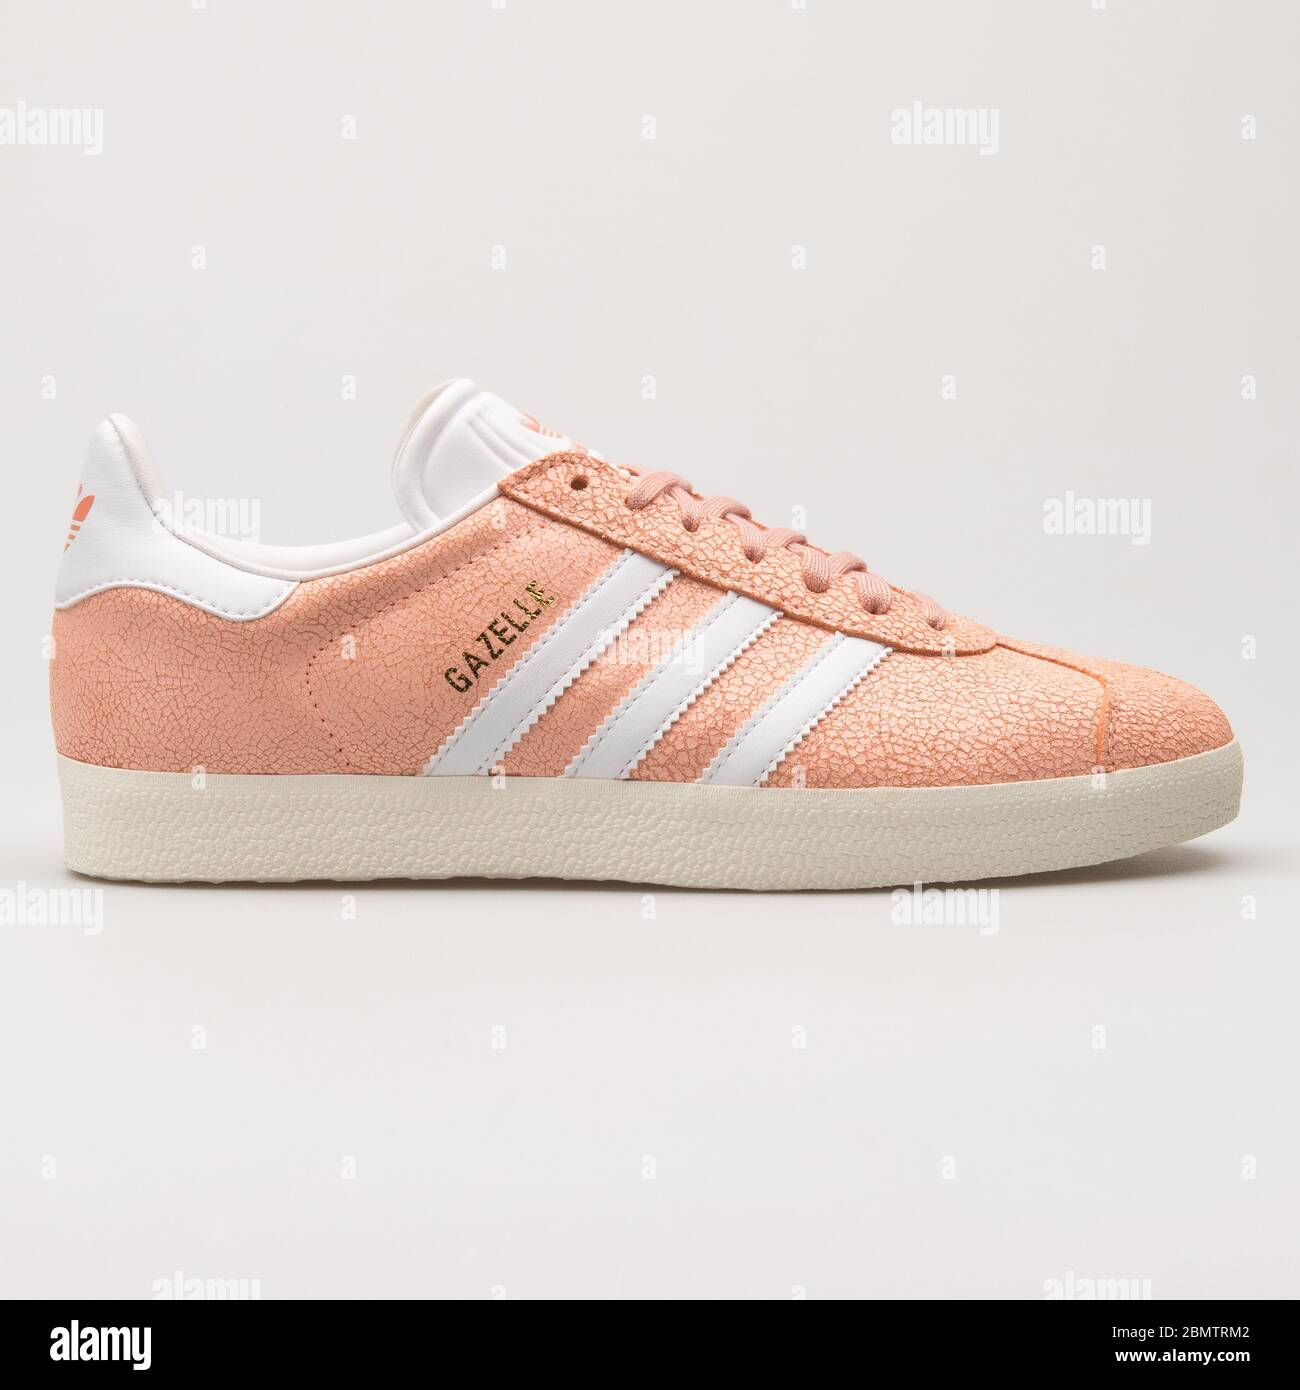 buy > adidas gazelle coral, Up to 63% OFF